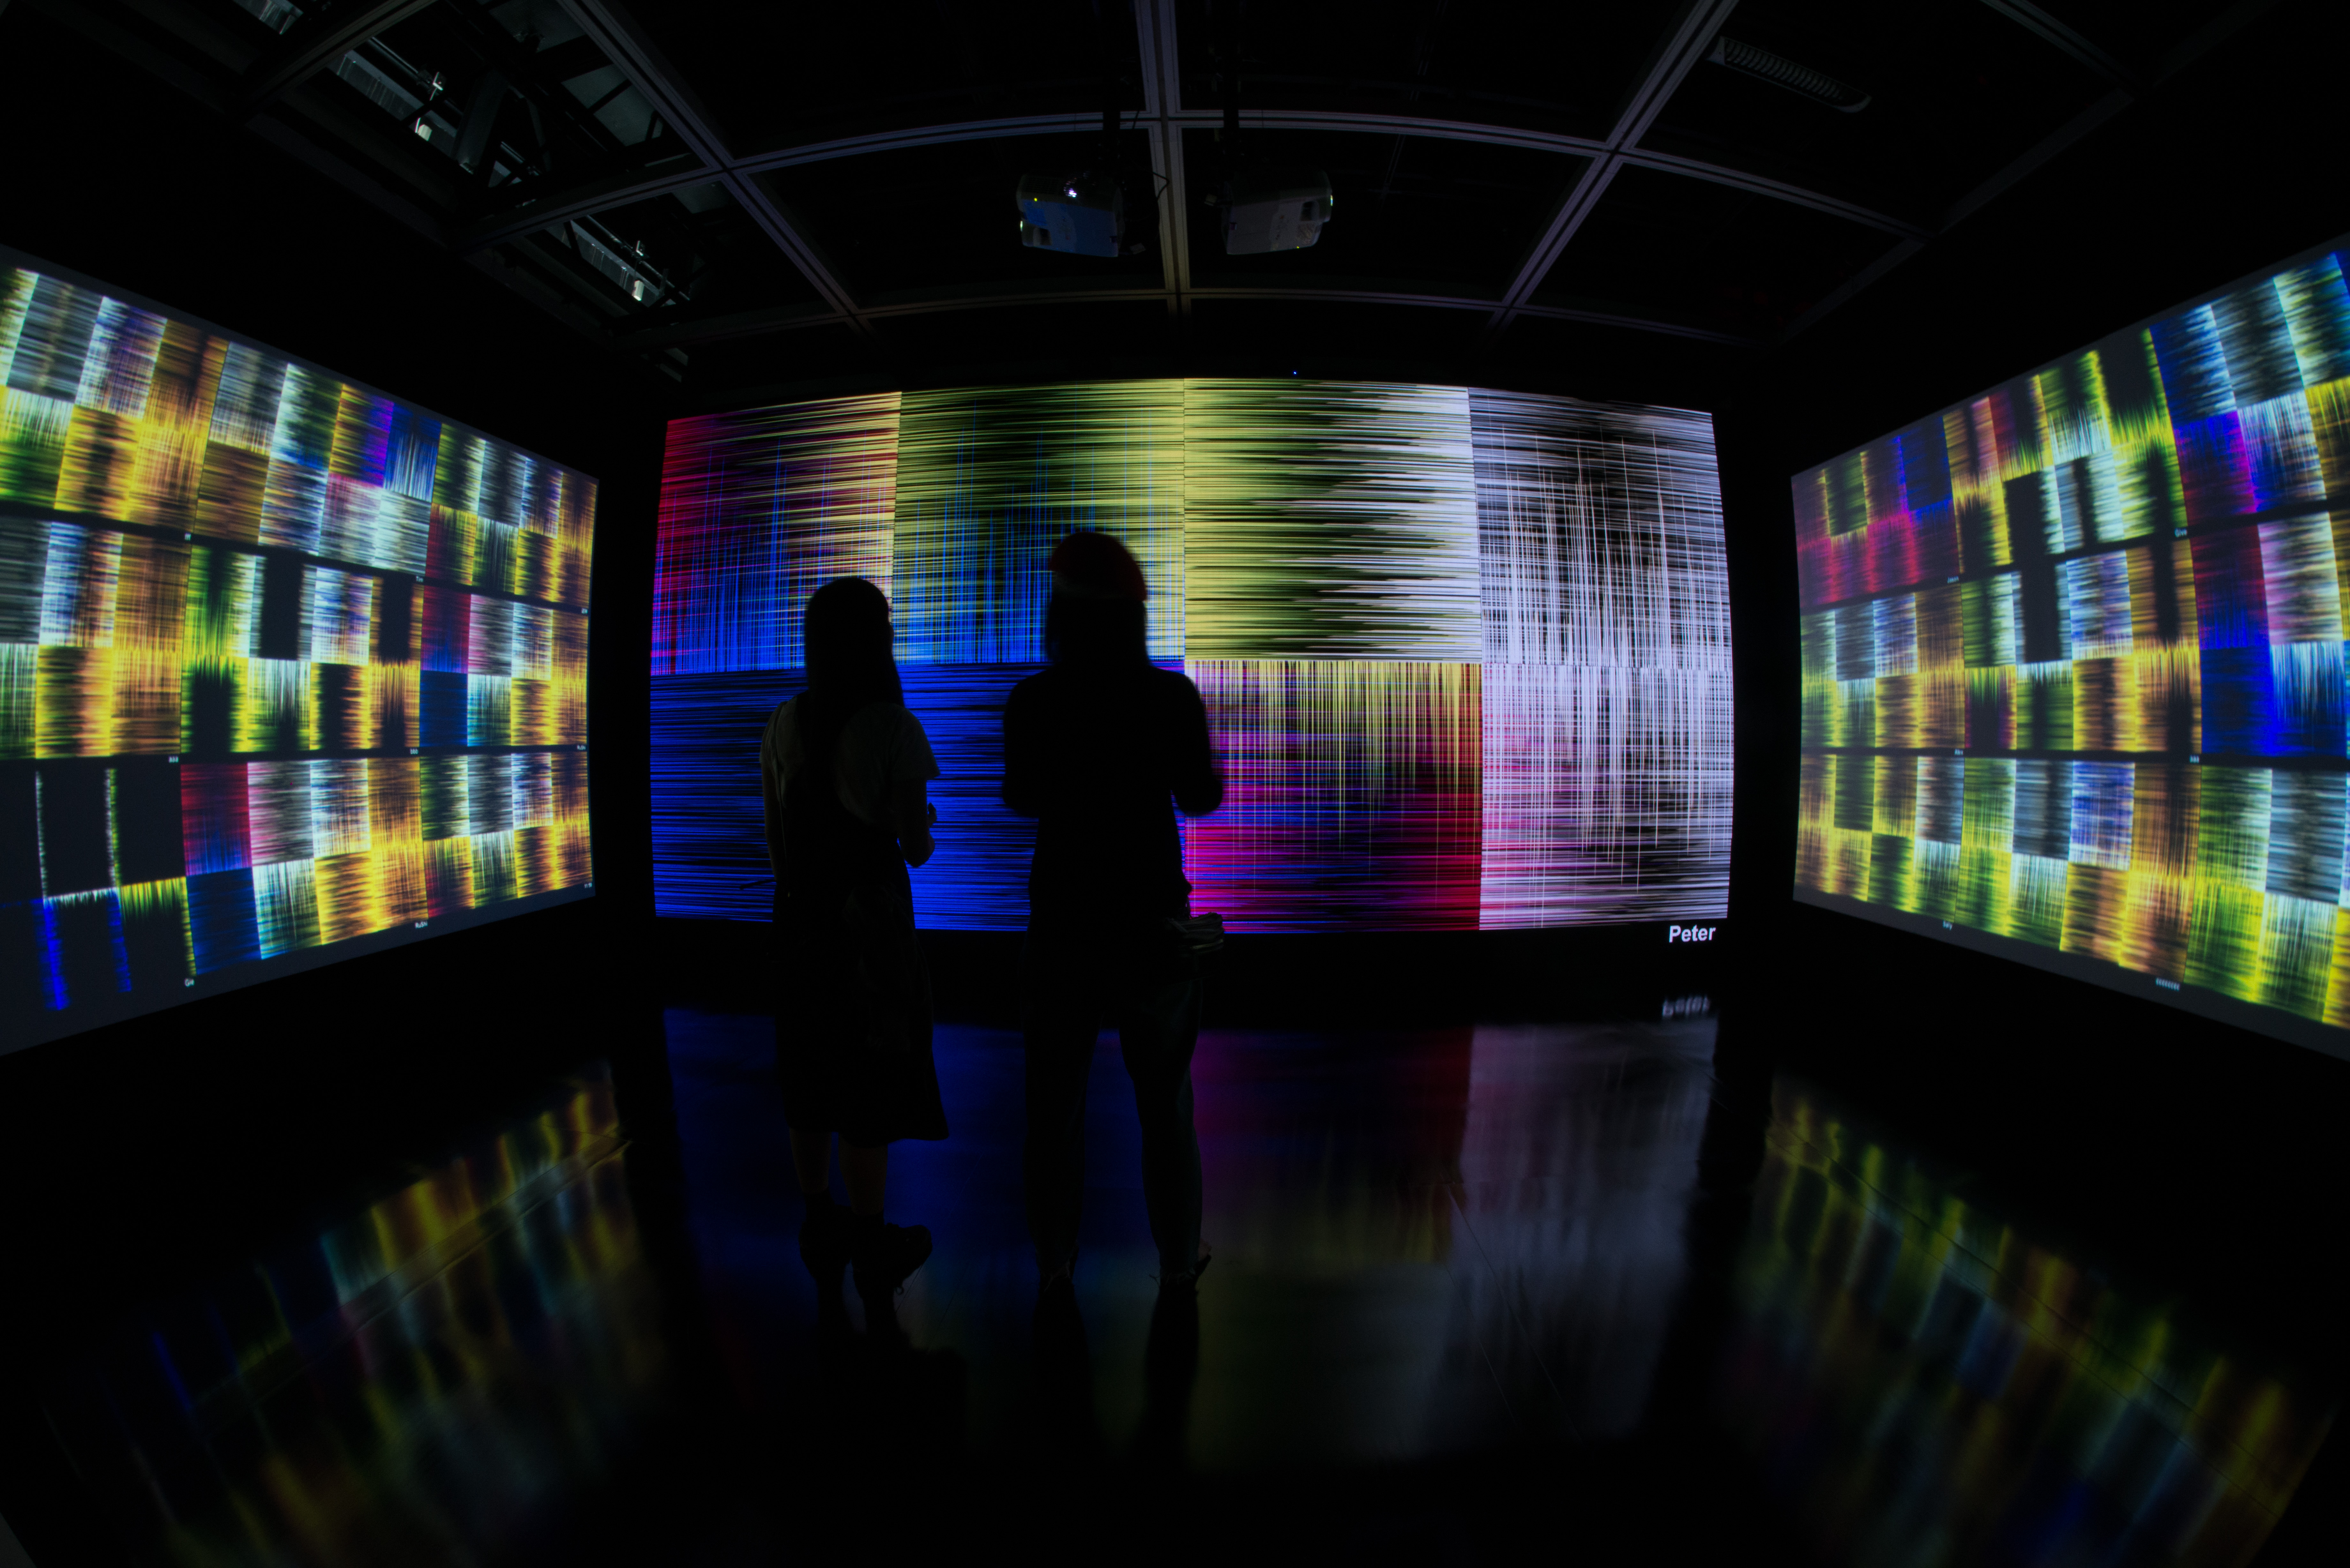 SIGGRAPH 2019 to Bring Immersive Art Exhibit to Downtown Los Angeles